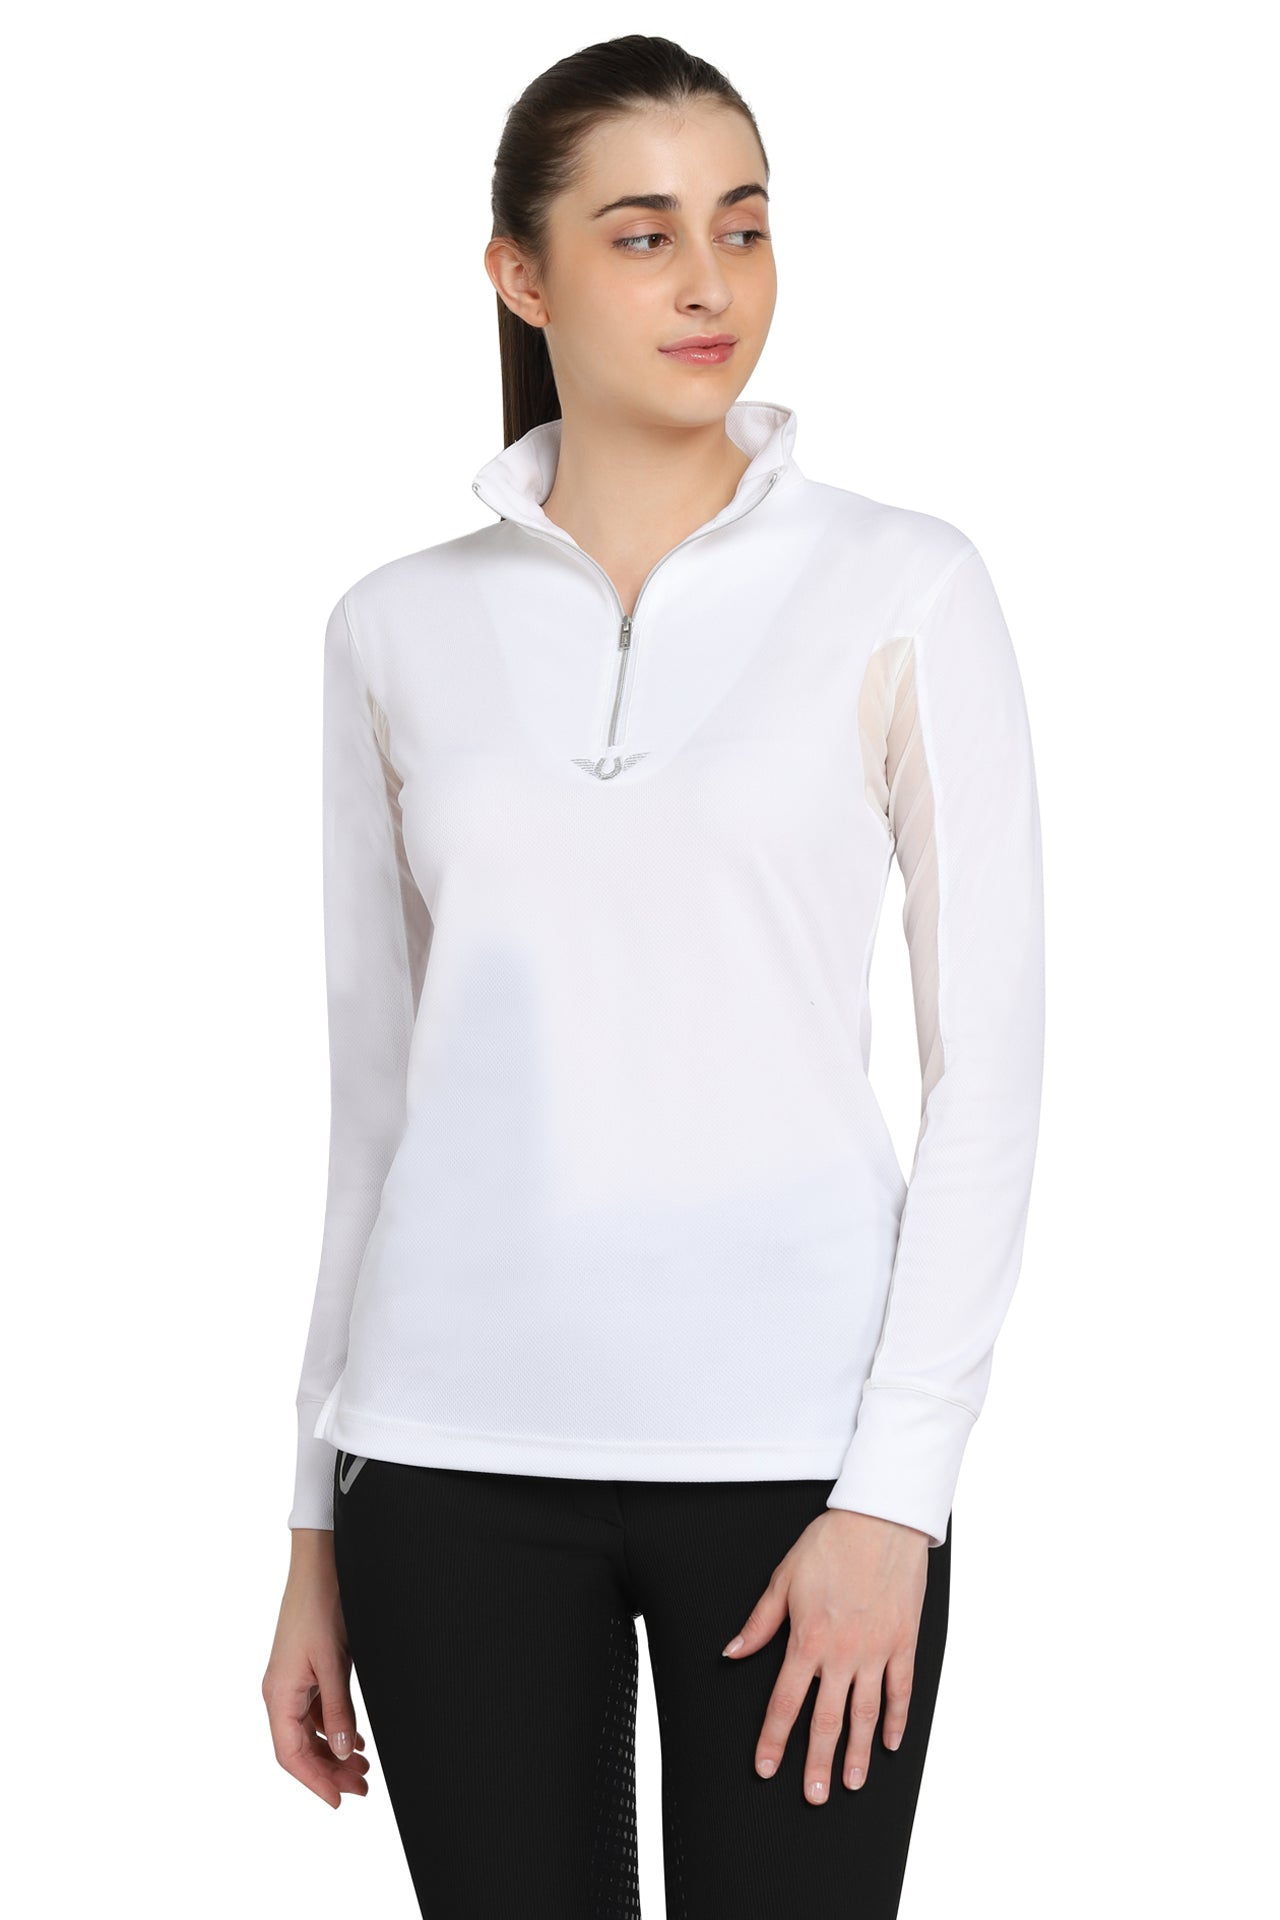 TuffRider Ladies Ventilated Technical Long Sleeve Sport Shirt_1